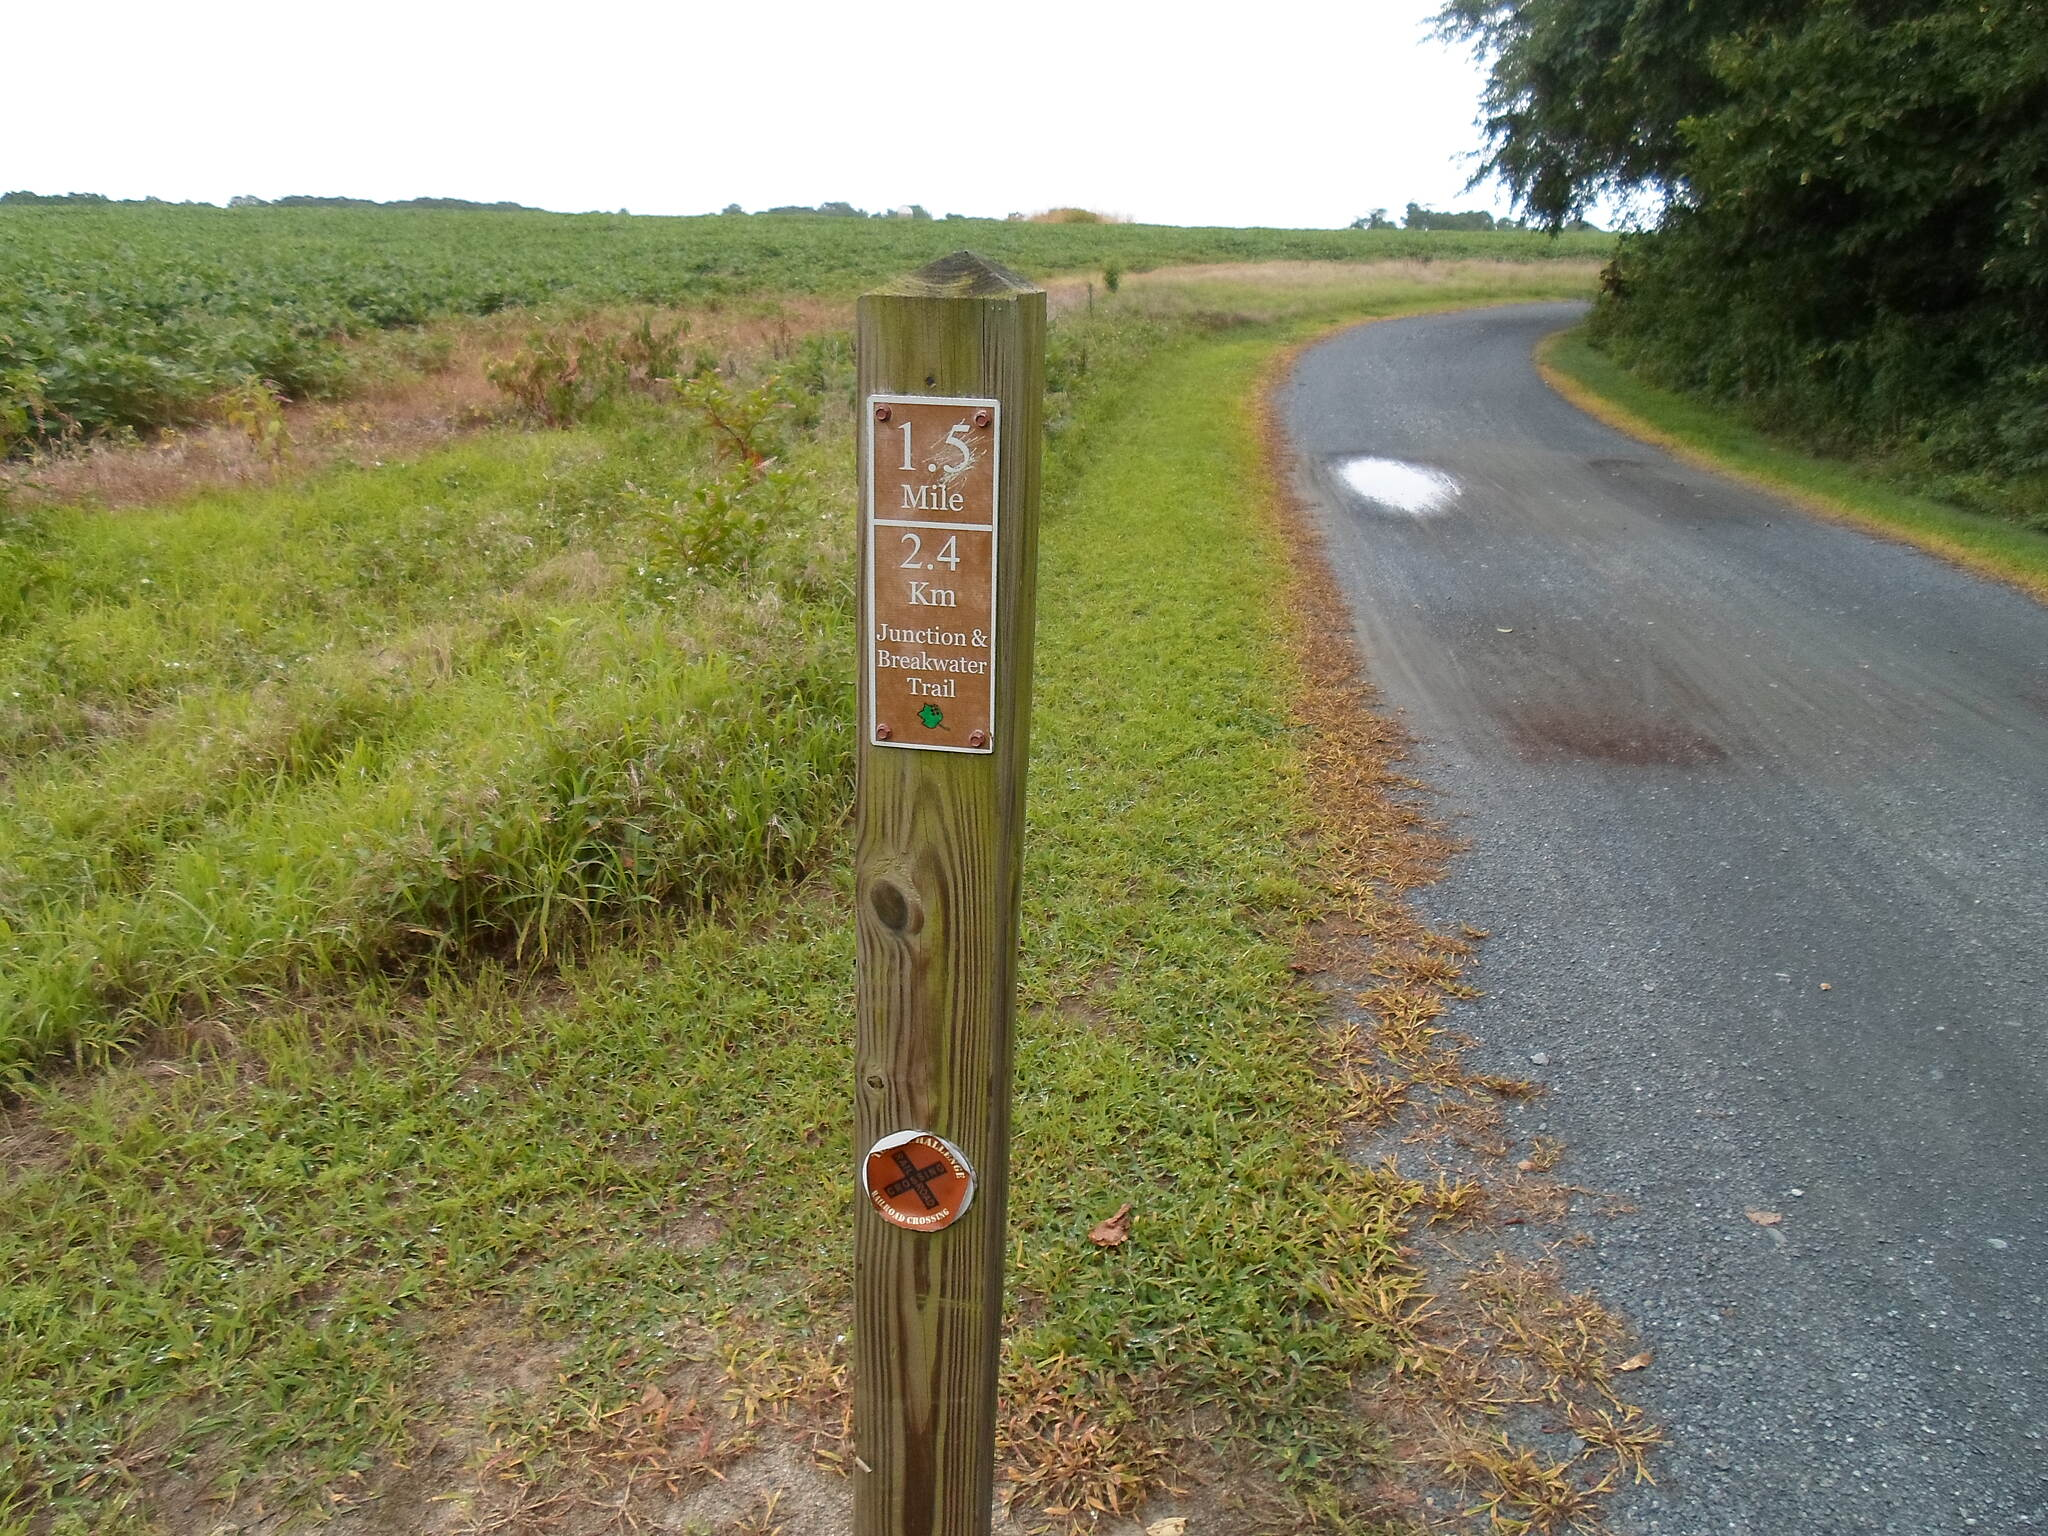 Junction & Breakwater Trail Junction & Breakwater Trail Milepost on the section that skirts the farm near Midway.